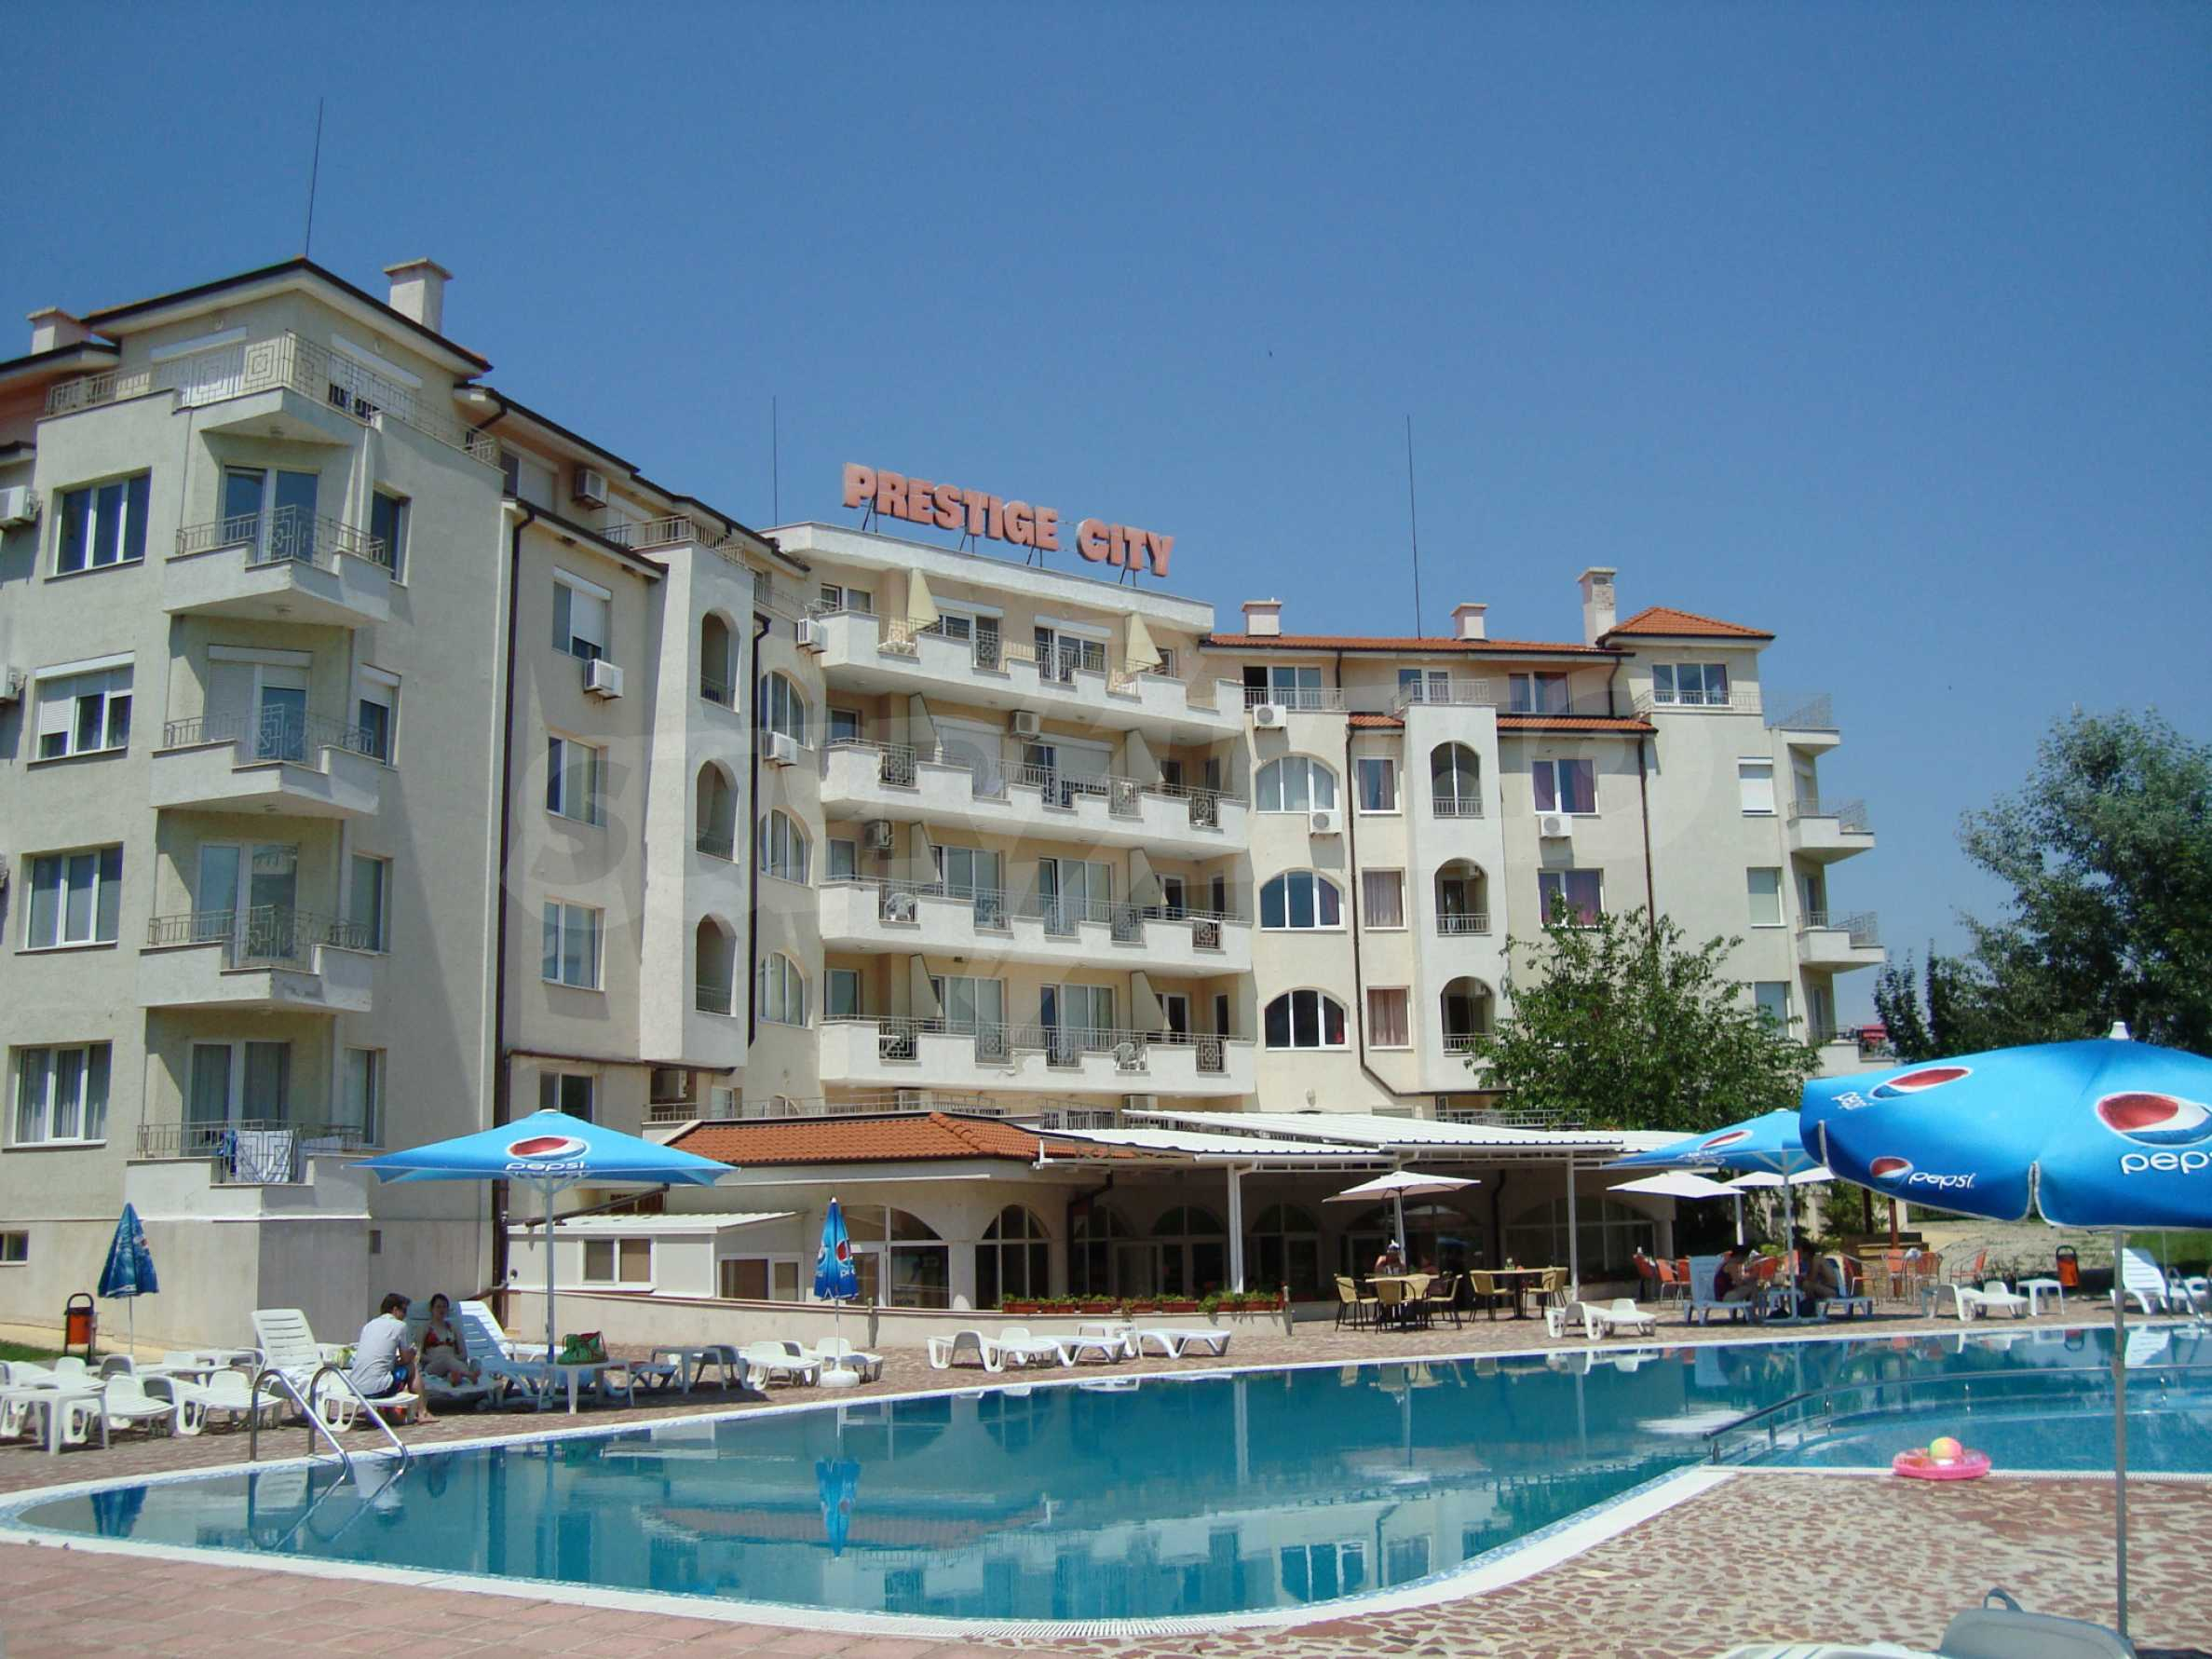 One-bedroom apartment in Prestige City 1 complex in Sunny beach 27